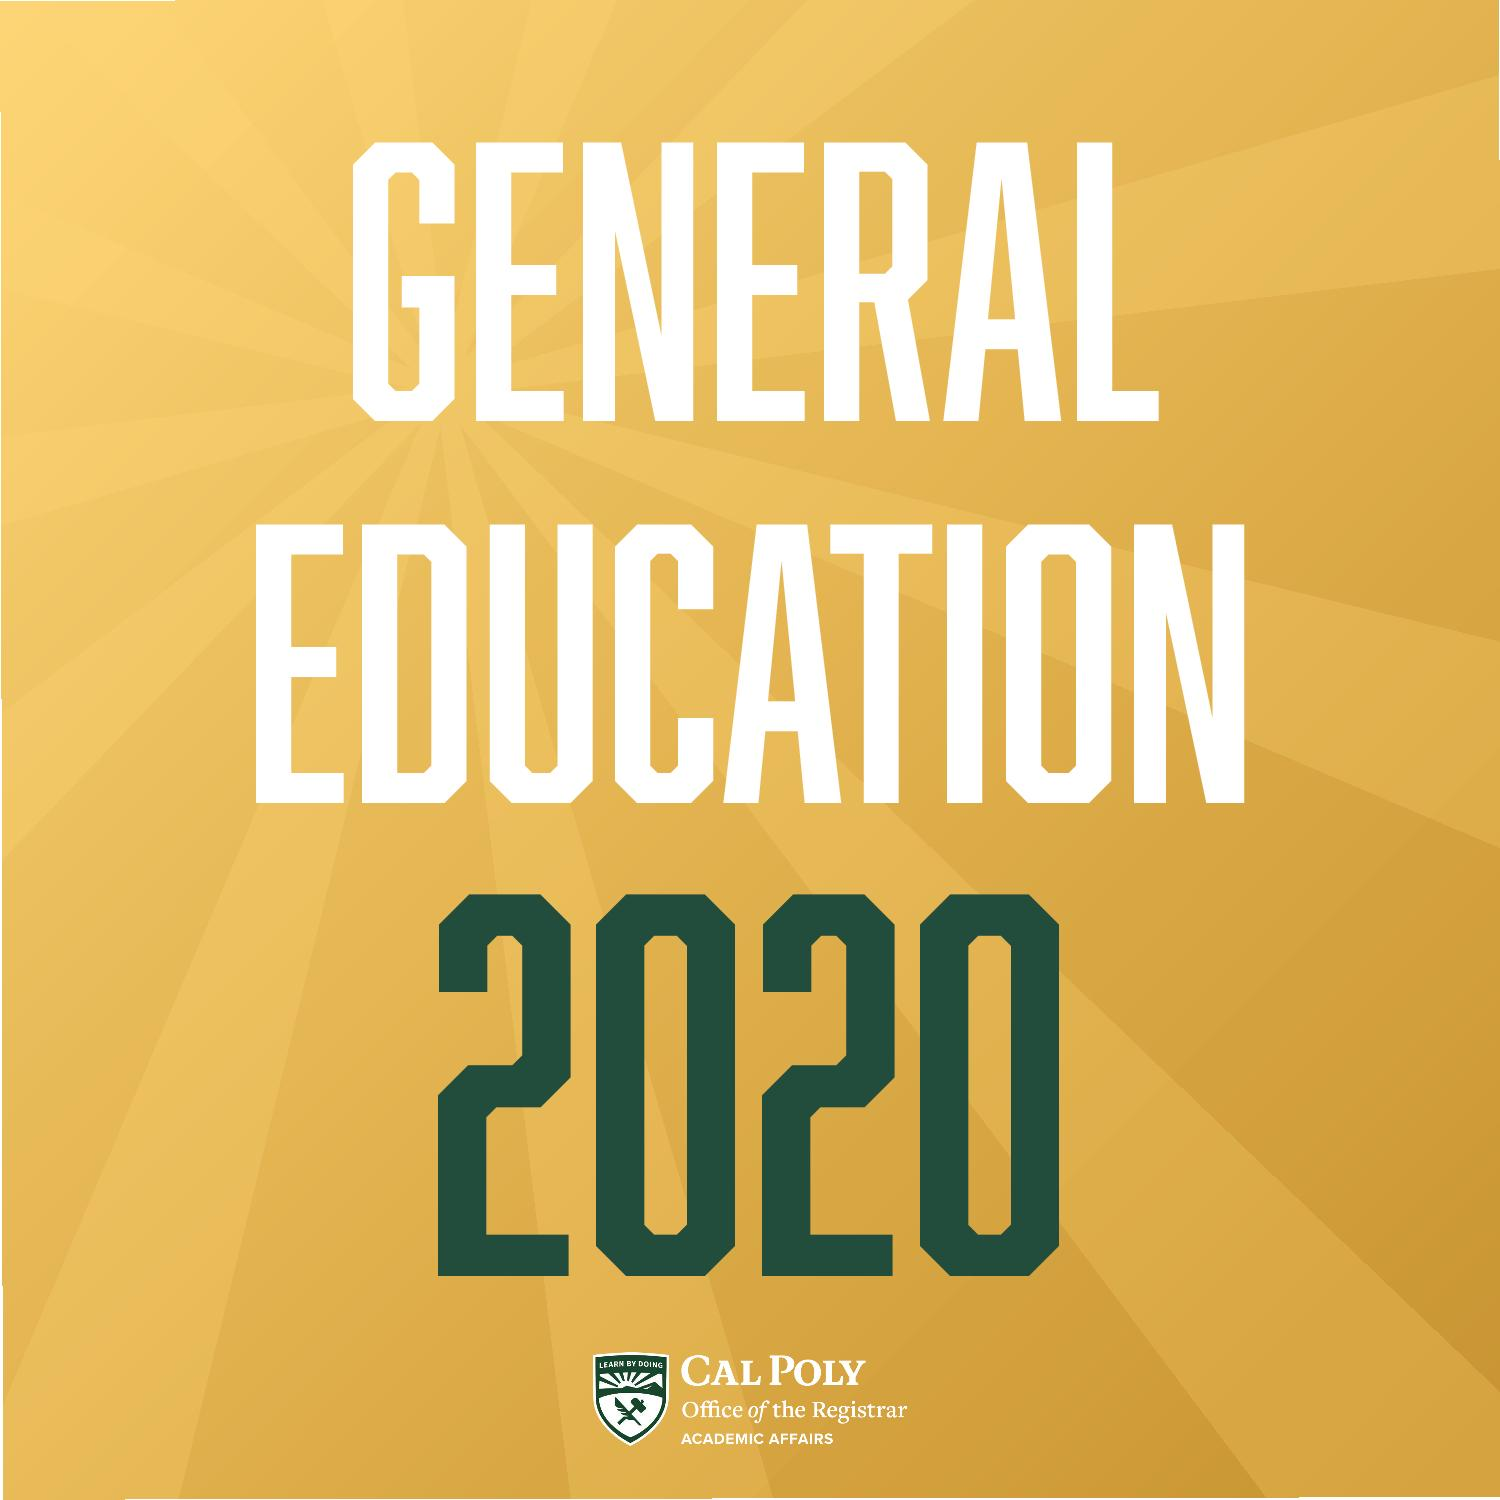 Gold box with text reading General Education 2020